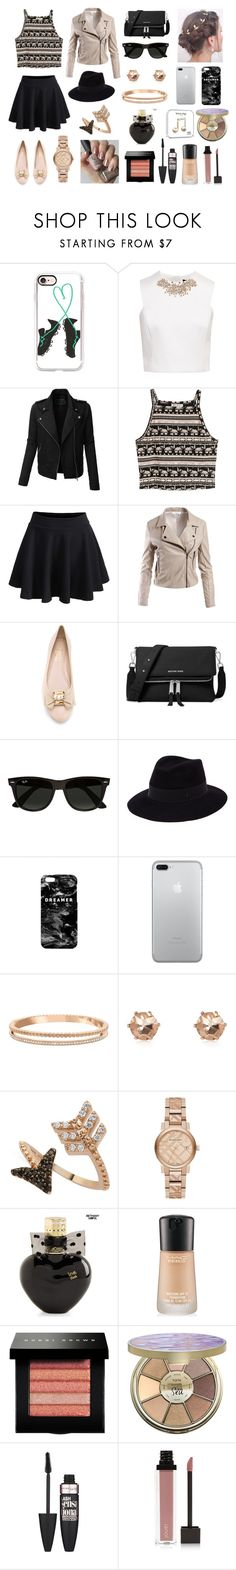 """""""Stylish Star"""" by juliebunny ❤ liked on Polyvore featuring Casetify, Ted Baker, LE3NO, H&M, WithChic, Sans Souci, Salvatore Ferragamo, MICHAEL Michael Kors, Ray-Ban and Maison Michel"""